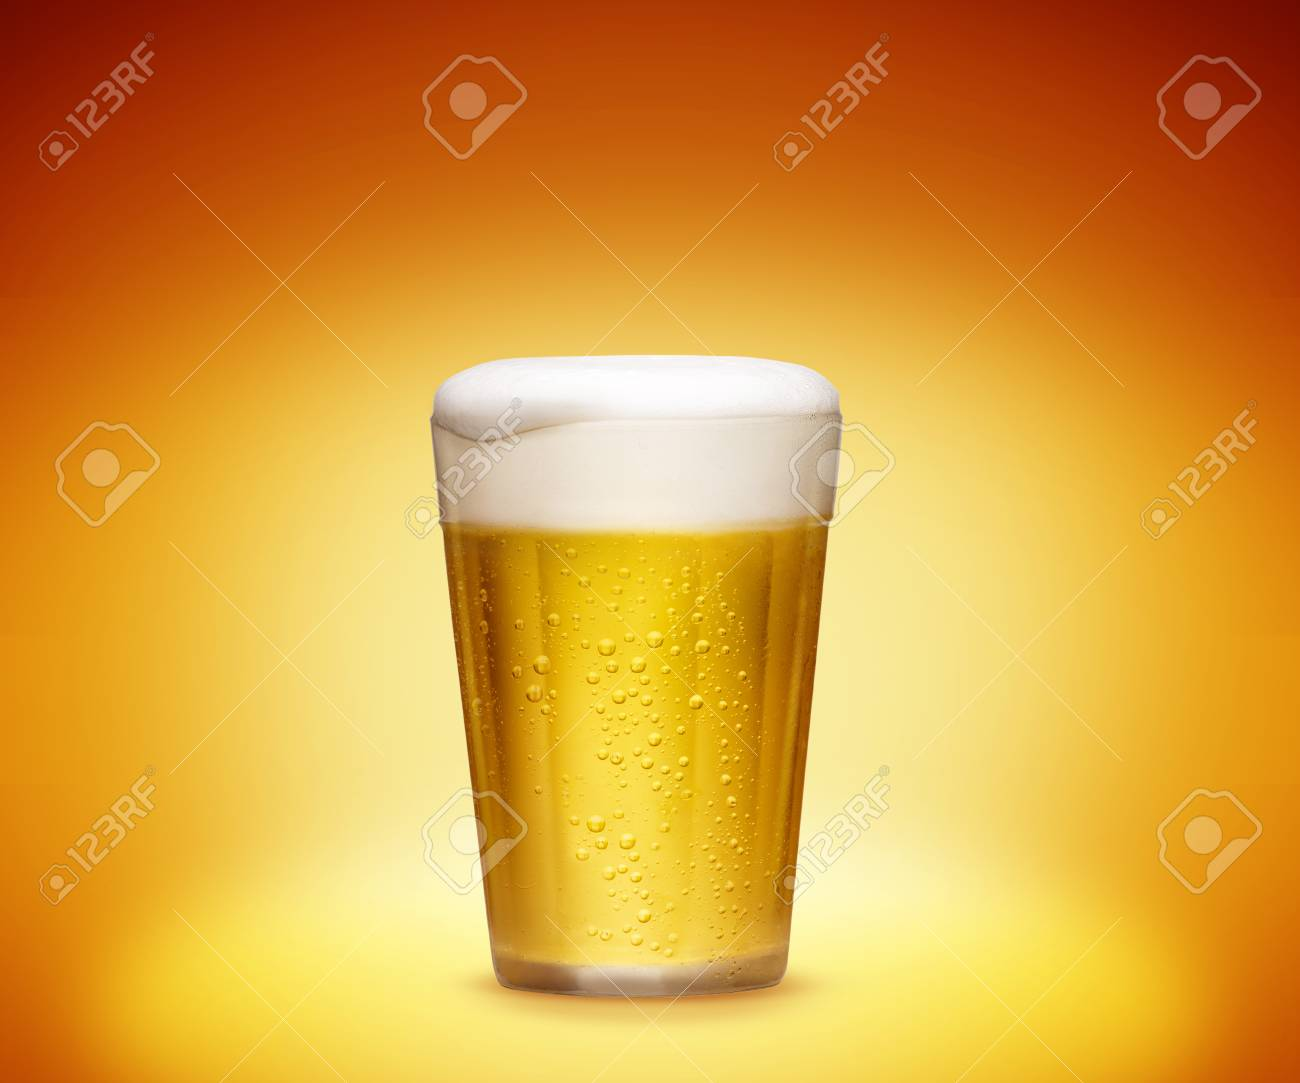 Glass of cold beer - 49967225